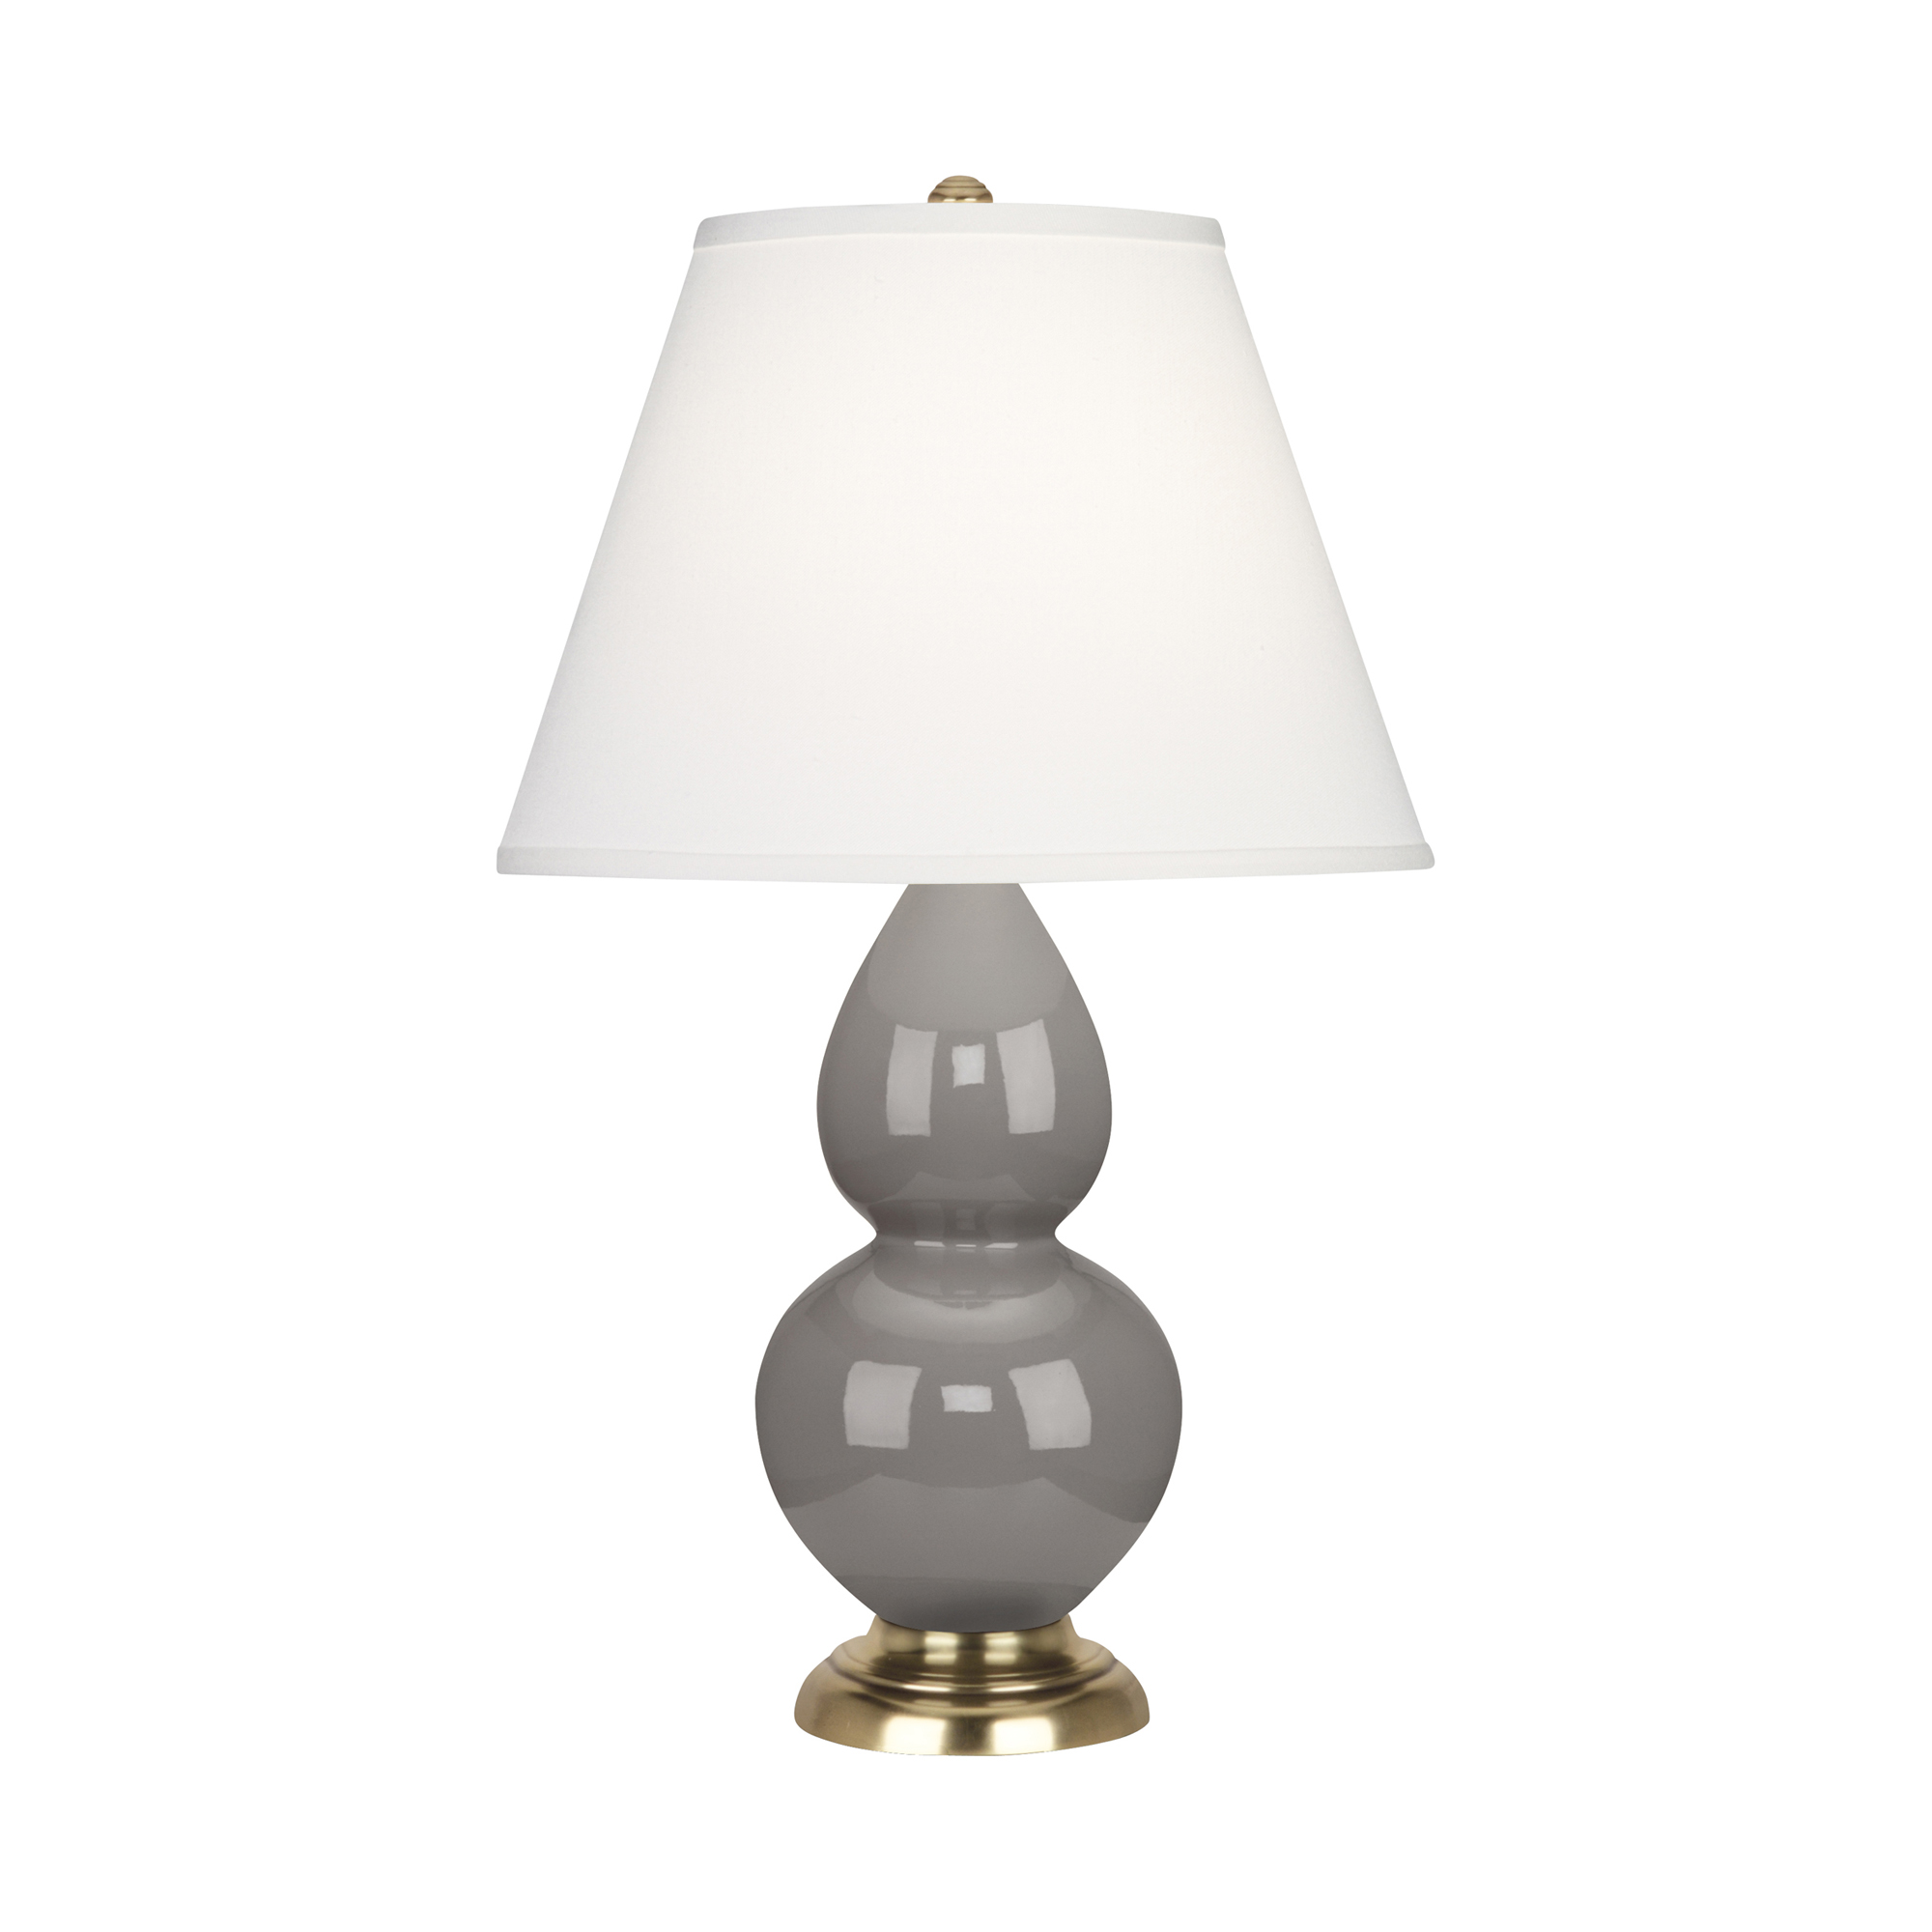 Small Double Gourd Accent Lamp Style #1768X